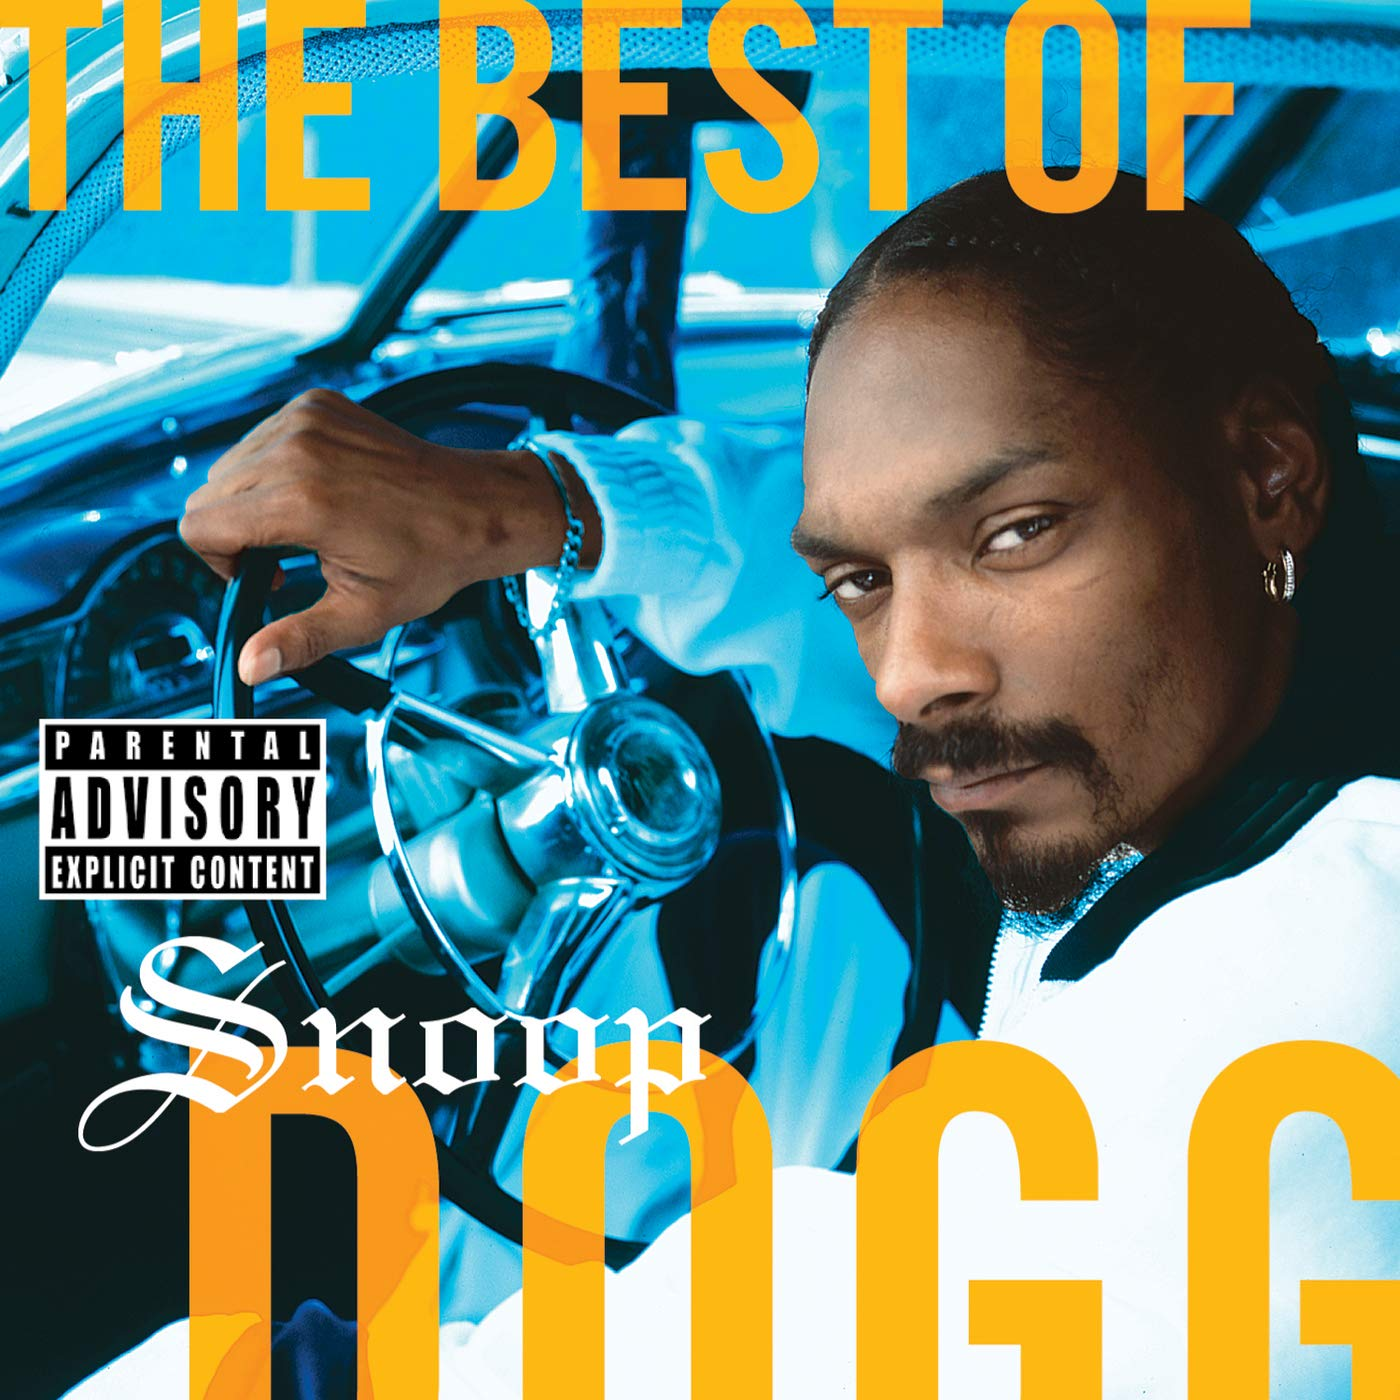 Snoop Dogg - The Best Of Snoop Dogg (2005) [FLAC] Download